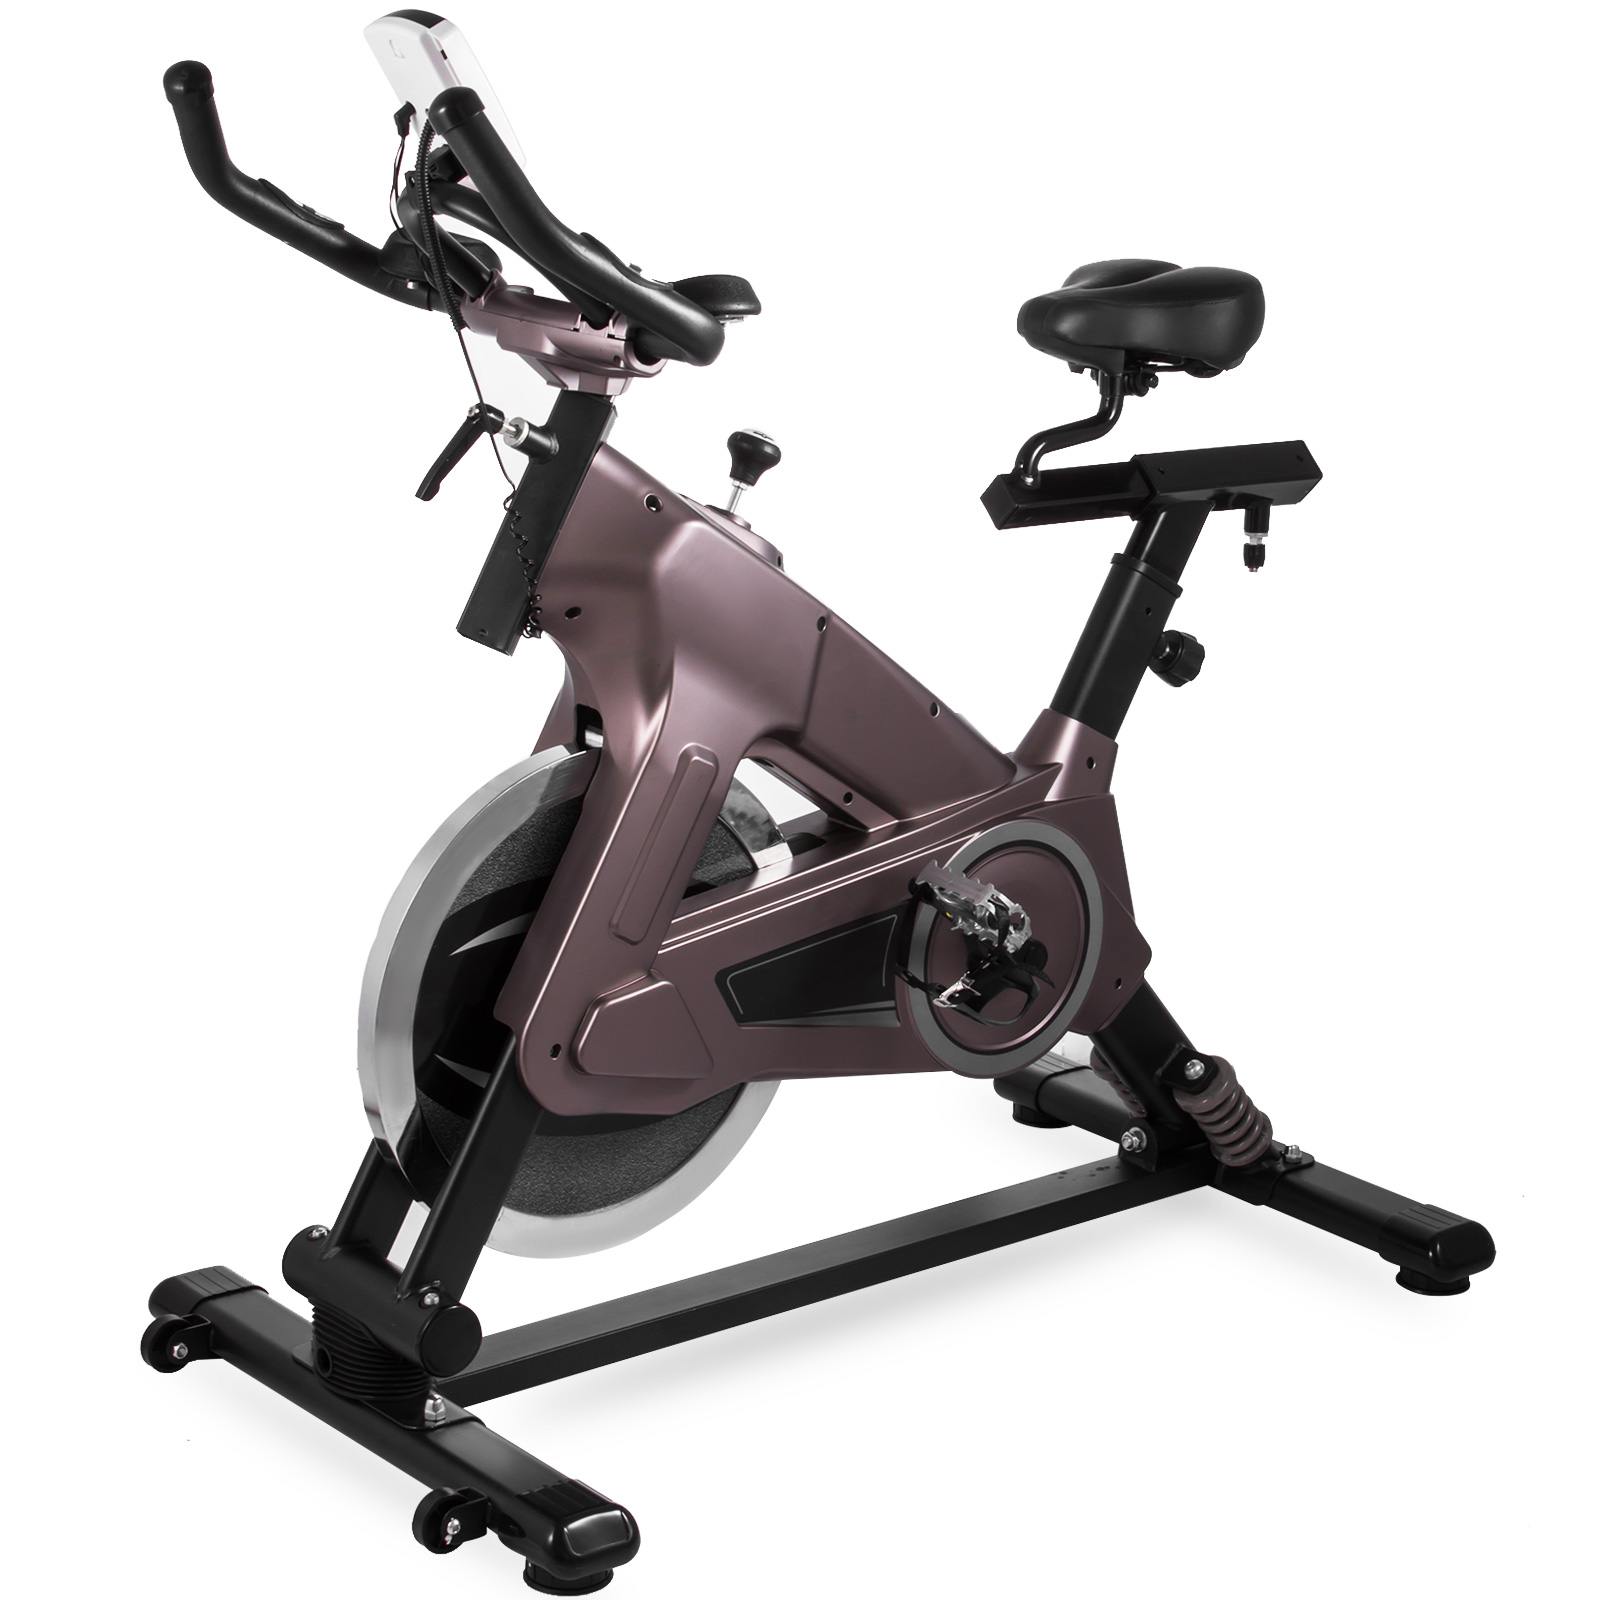 Multi-style-Magnetic-Exercise-Bike-office-Bicycle-under-Desk-Fitness-Cardio miniature 145